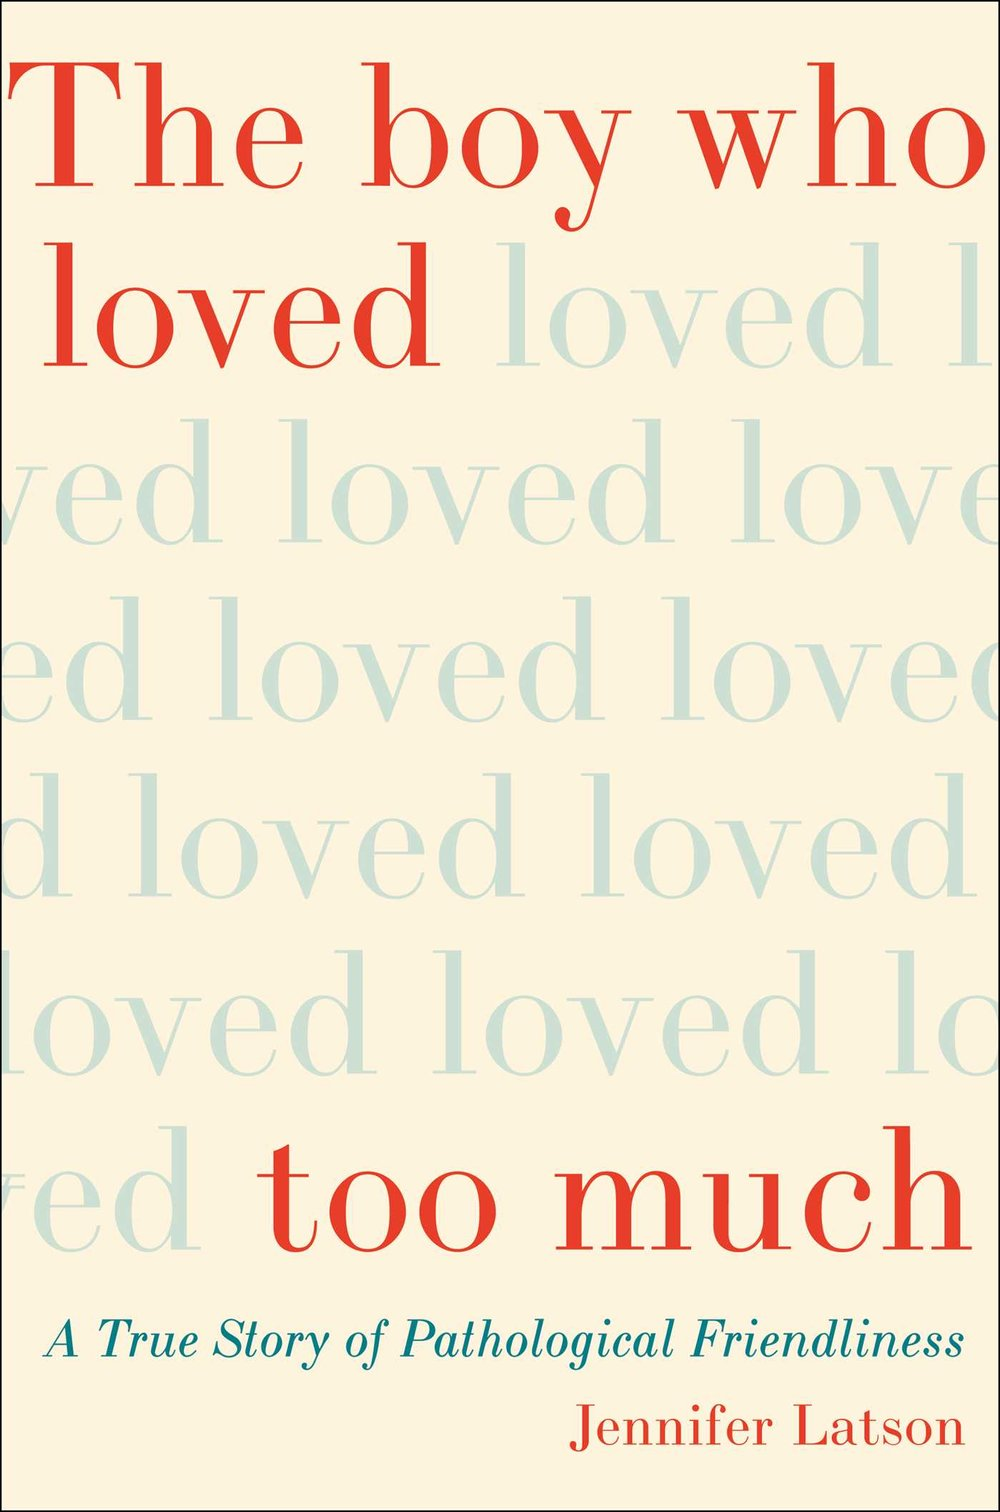 The Boy Who Loved Too Much  by Jennifer Latson  Simon & Schuster --- June 20, 2017